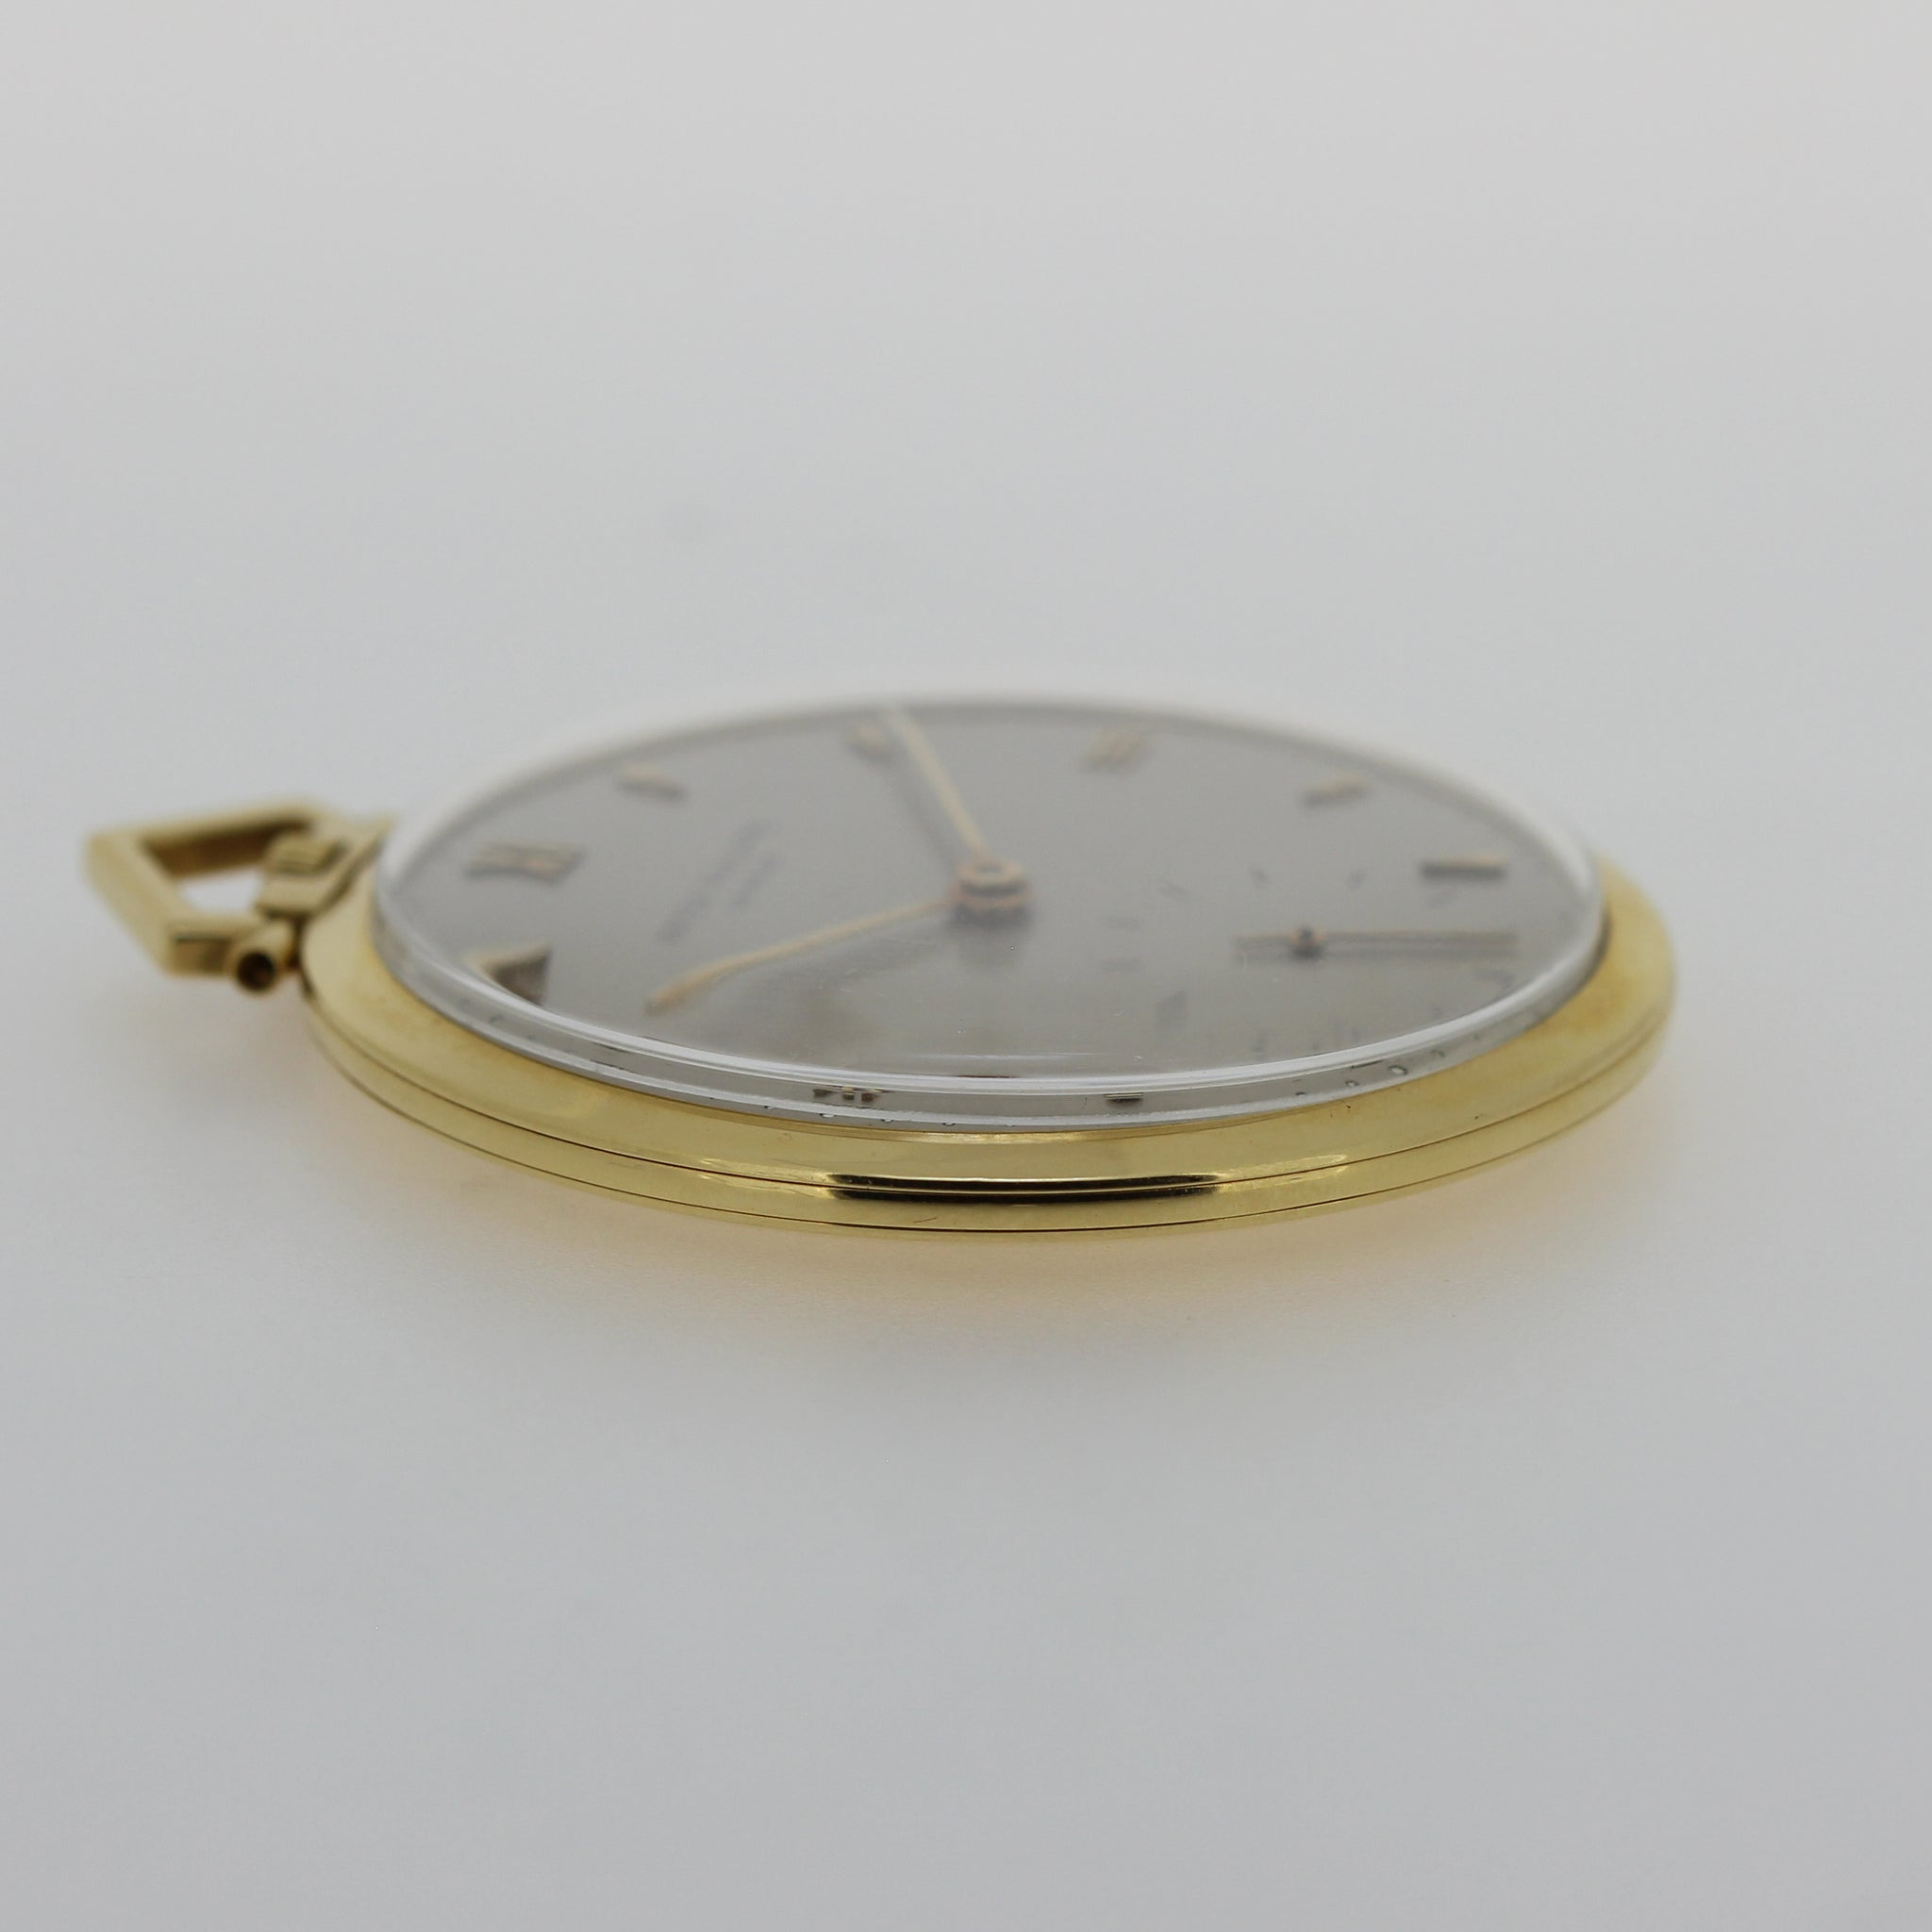 Patek Philippe 763J Pocket Watch